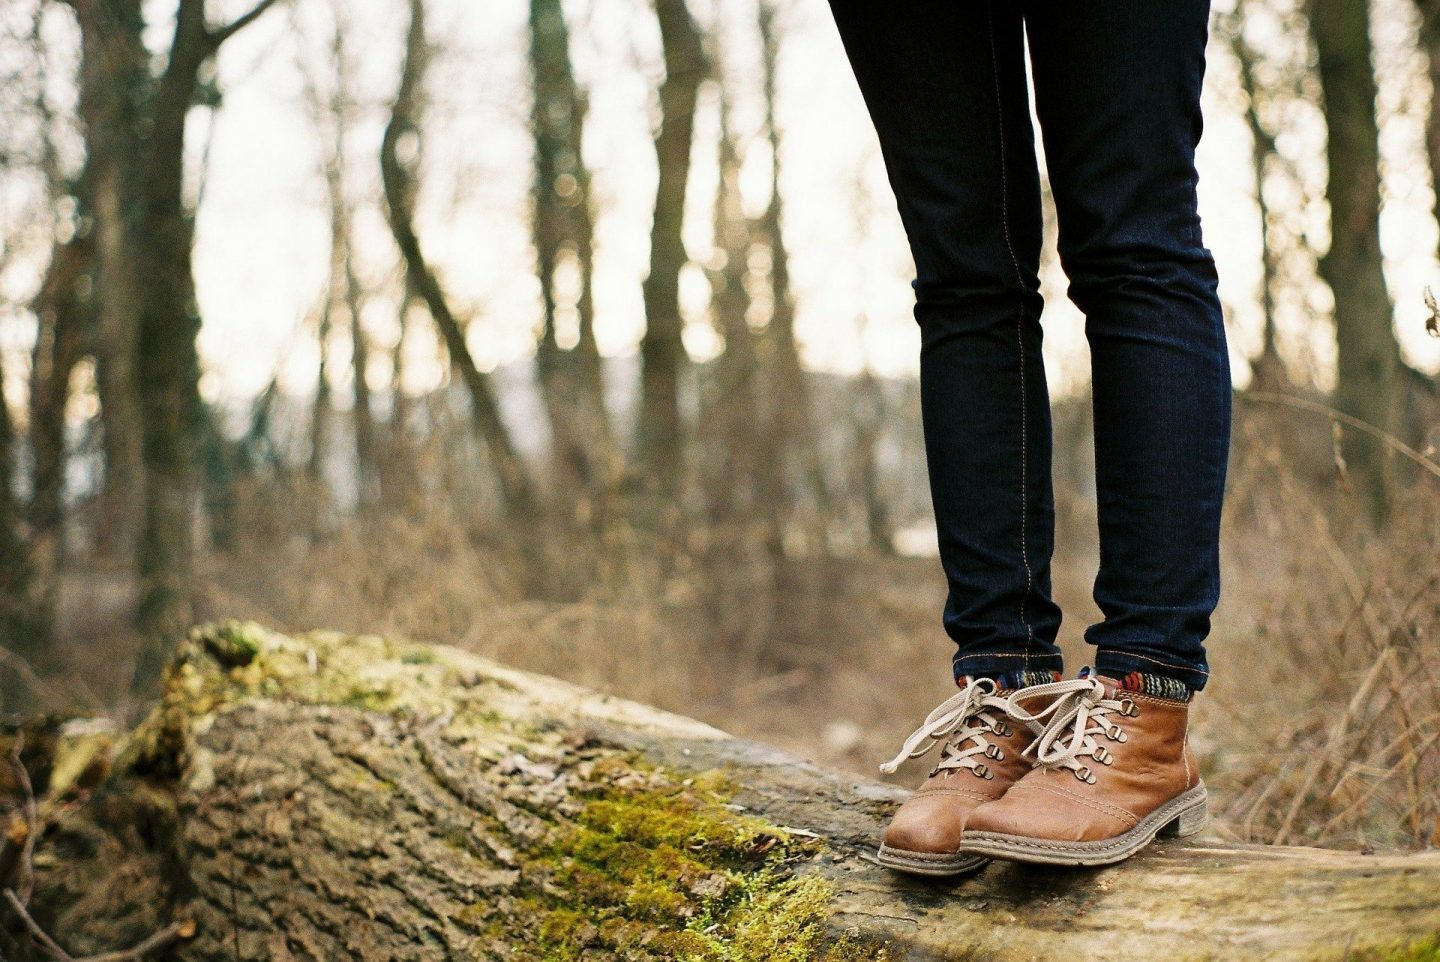 The legs of a person wearing jeans and walking boots, standing on a log in the woods